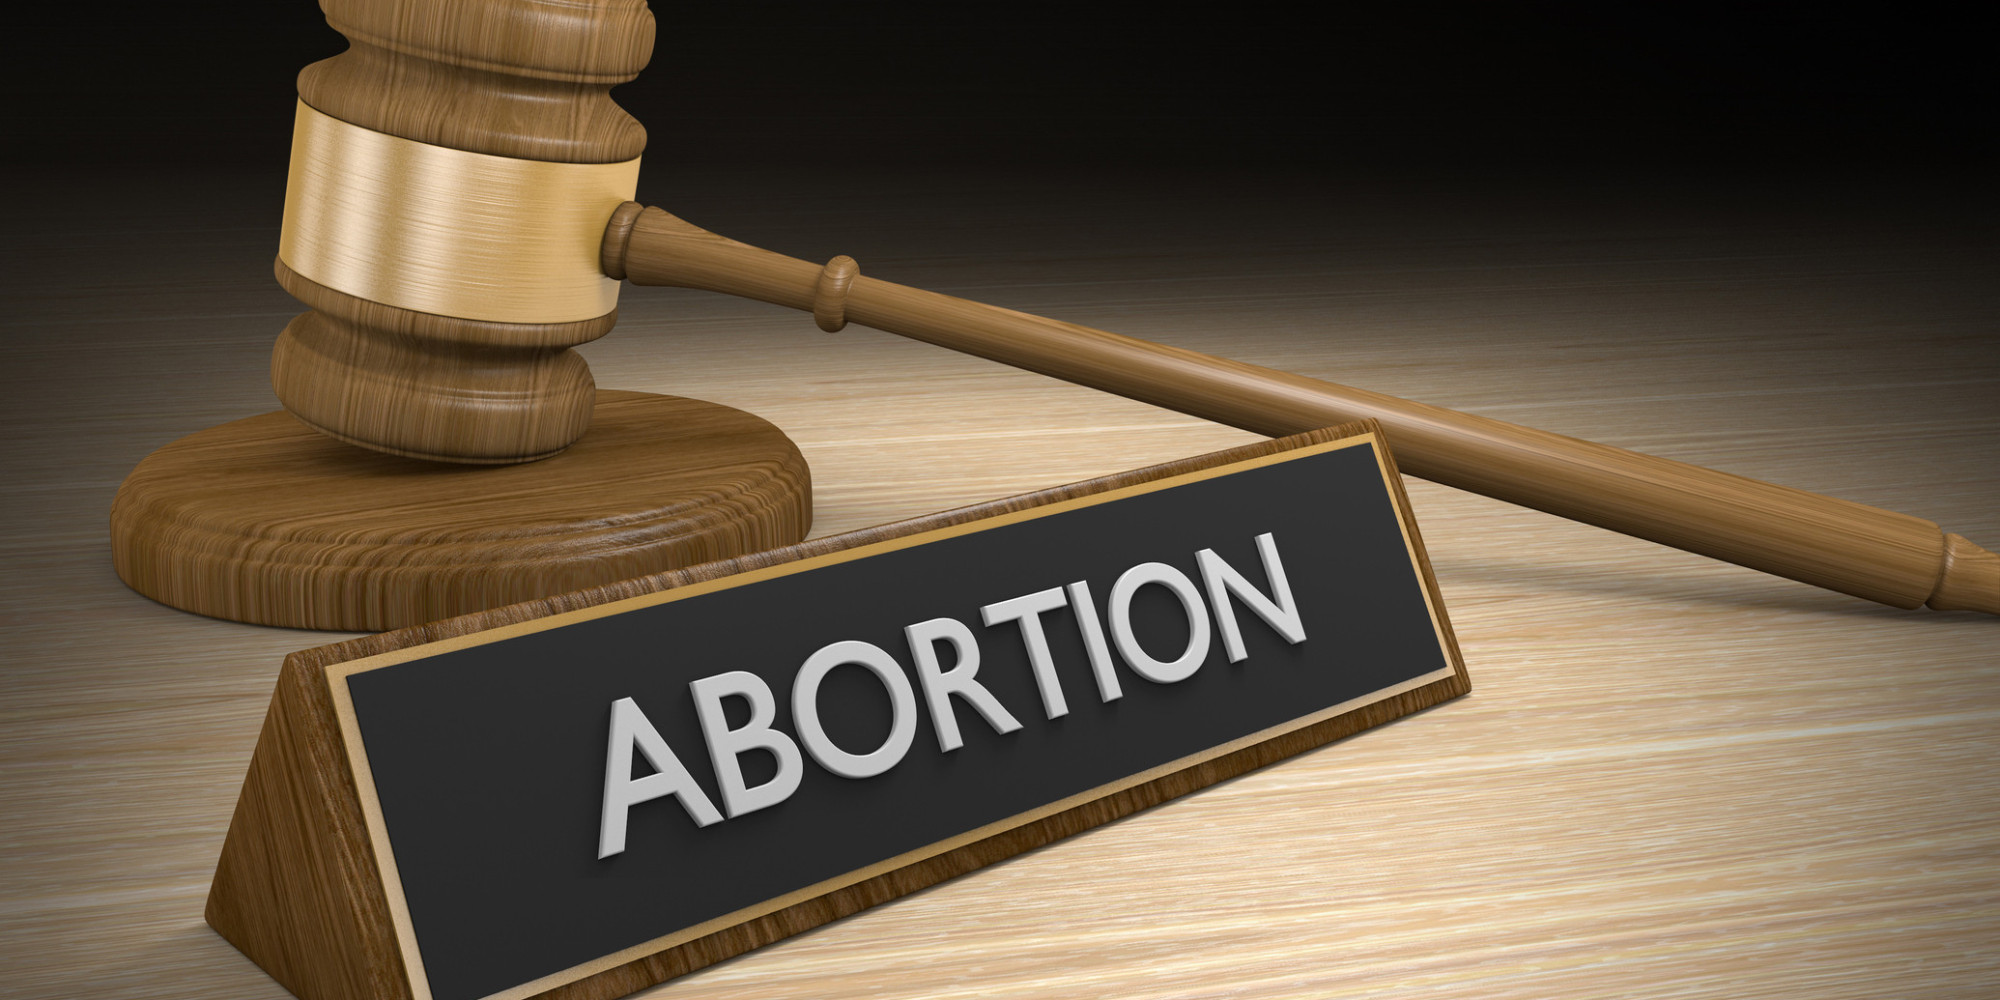 Questions on Abortions?